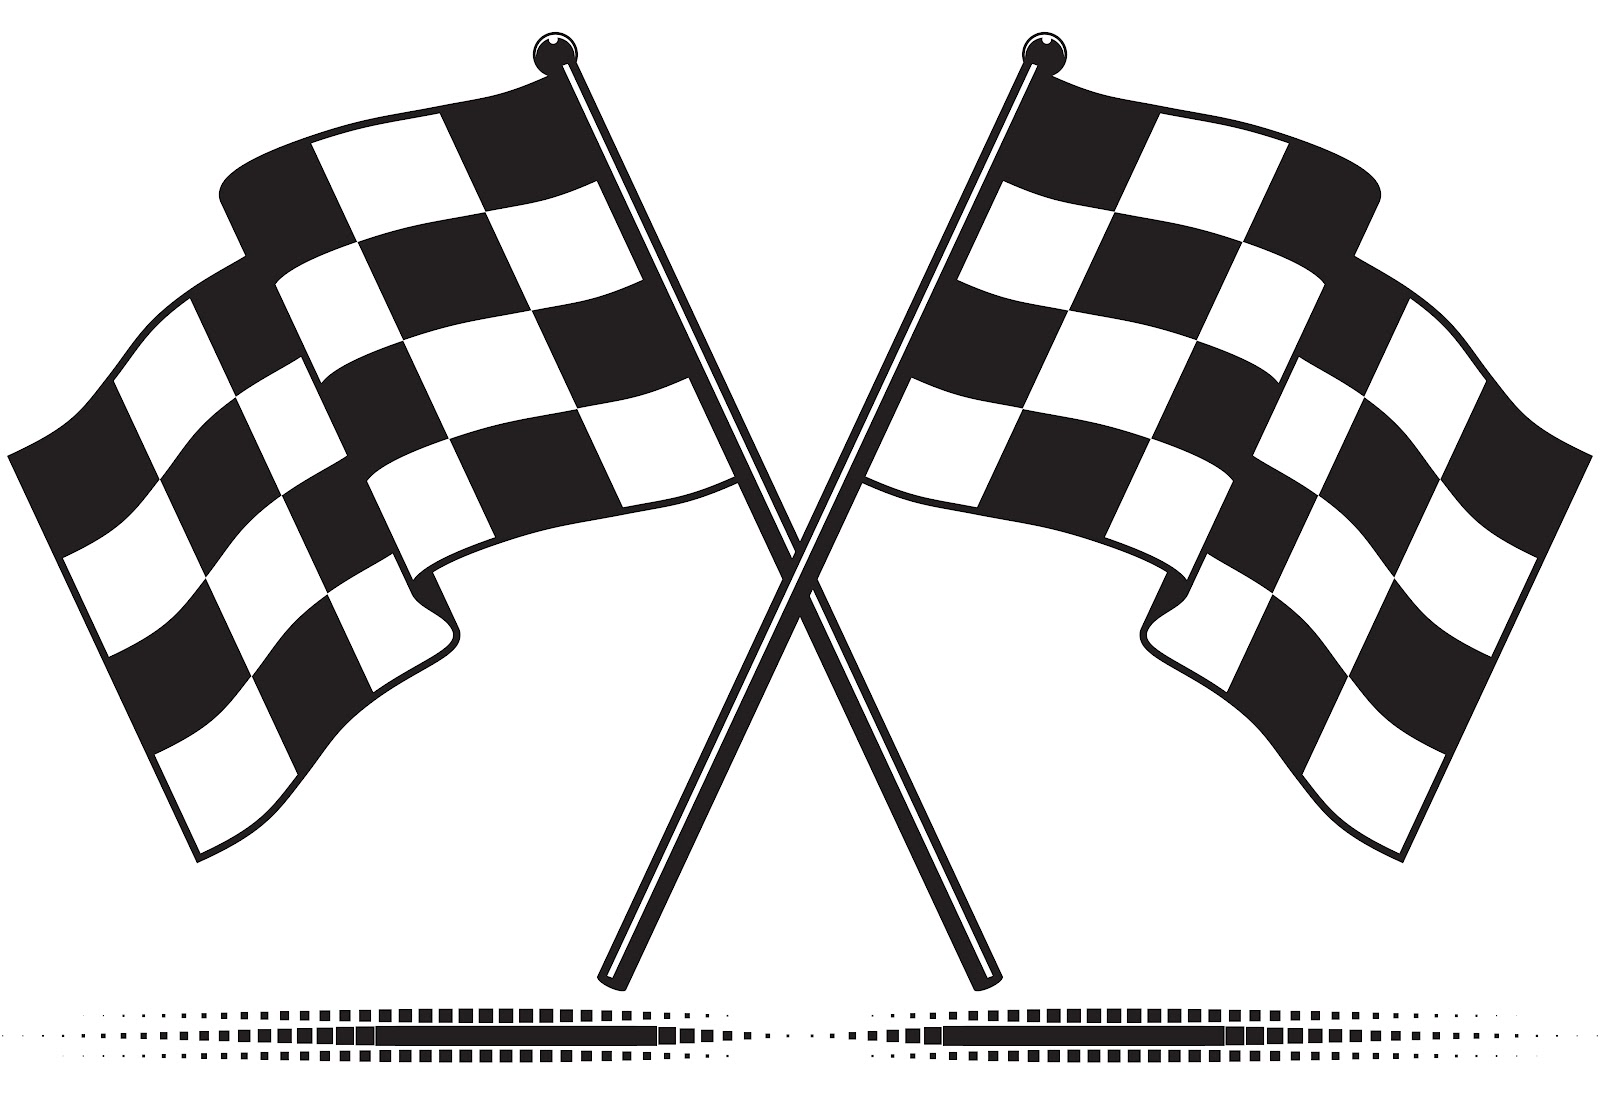 Clip Art Racing Clipart racing flags clipart kid adrenaline adventures and nascar experience to theiroptions